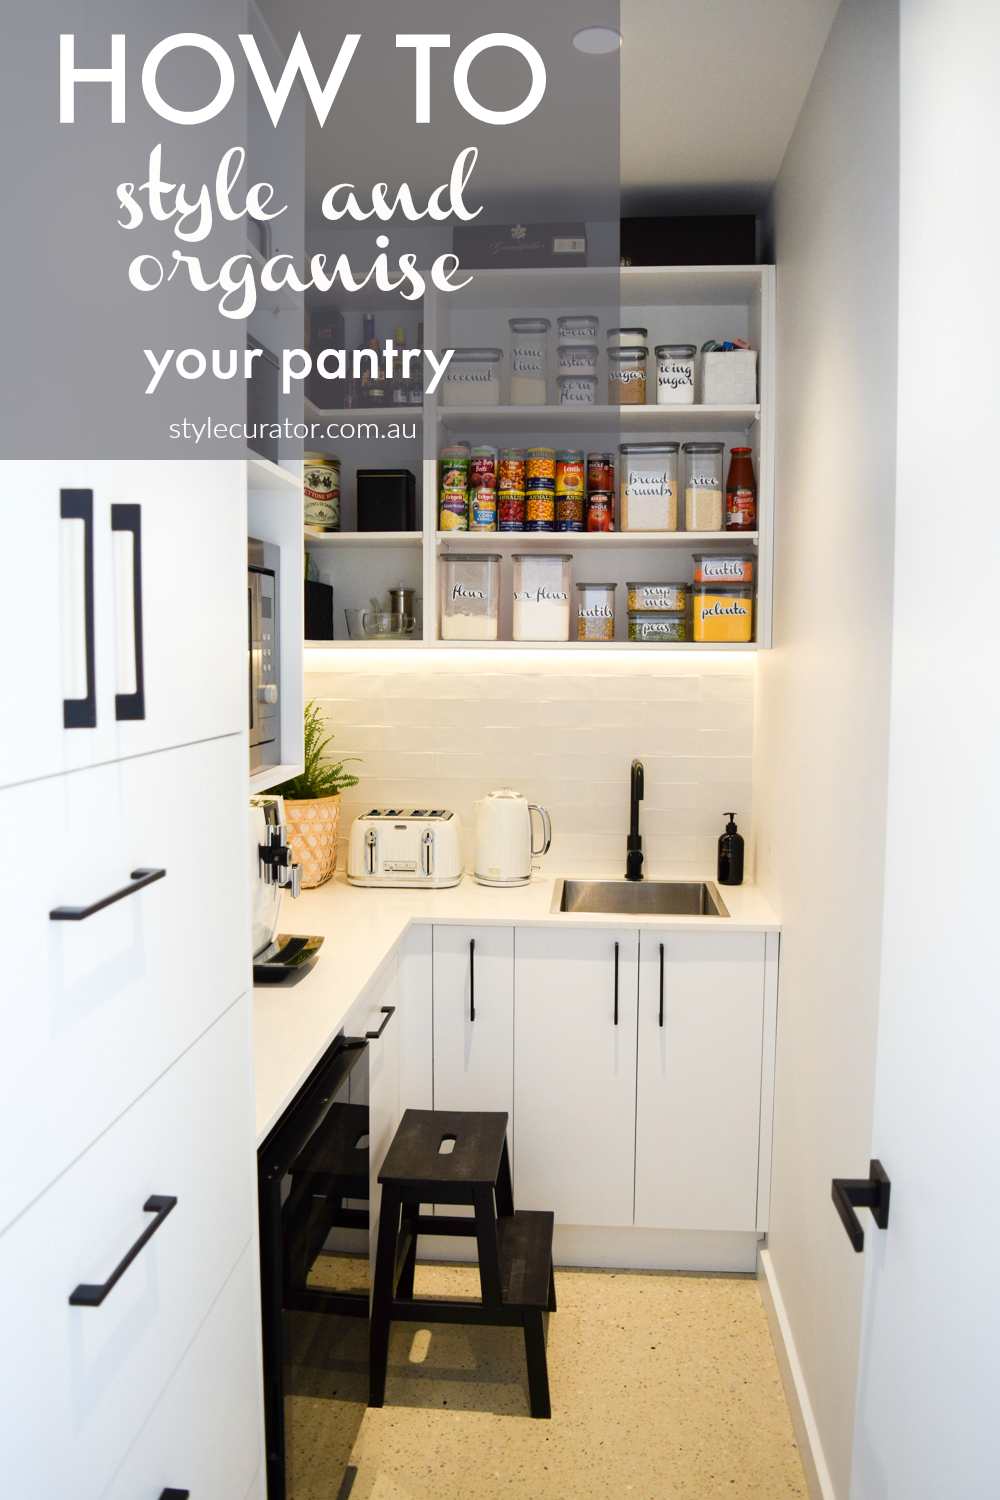 How to style and organise your pantry - STYLE CURATOR